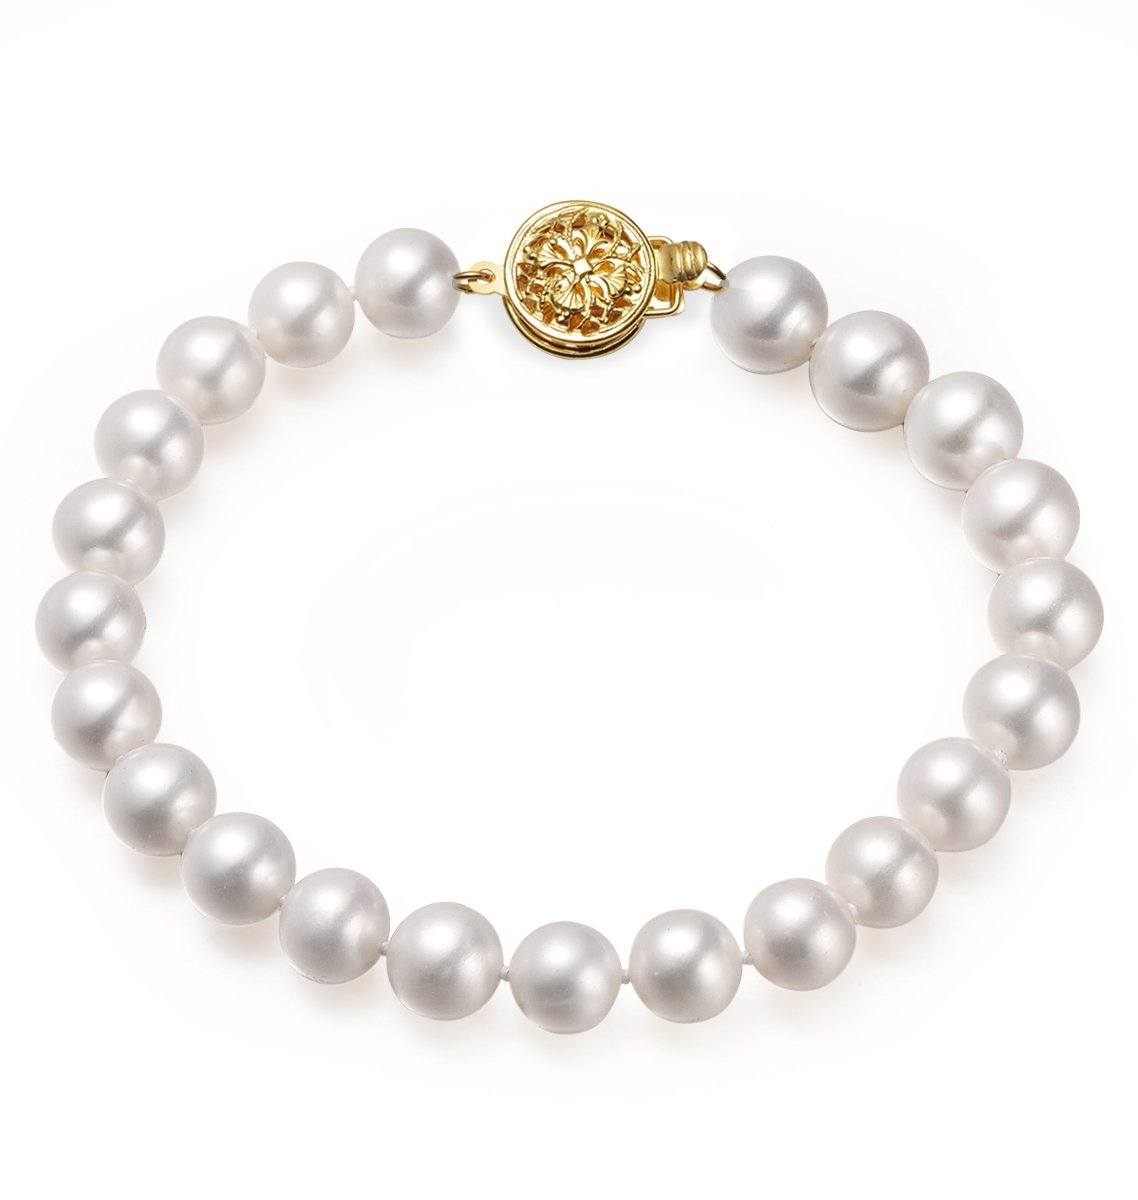 white, 7-8mm, aaa, cultured freshwater pearl bracelet with 14k solid yellow gold round filigree